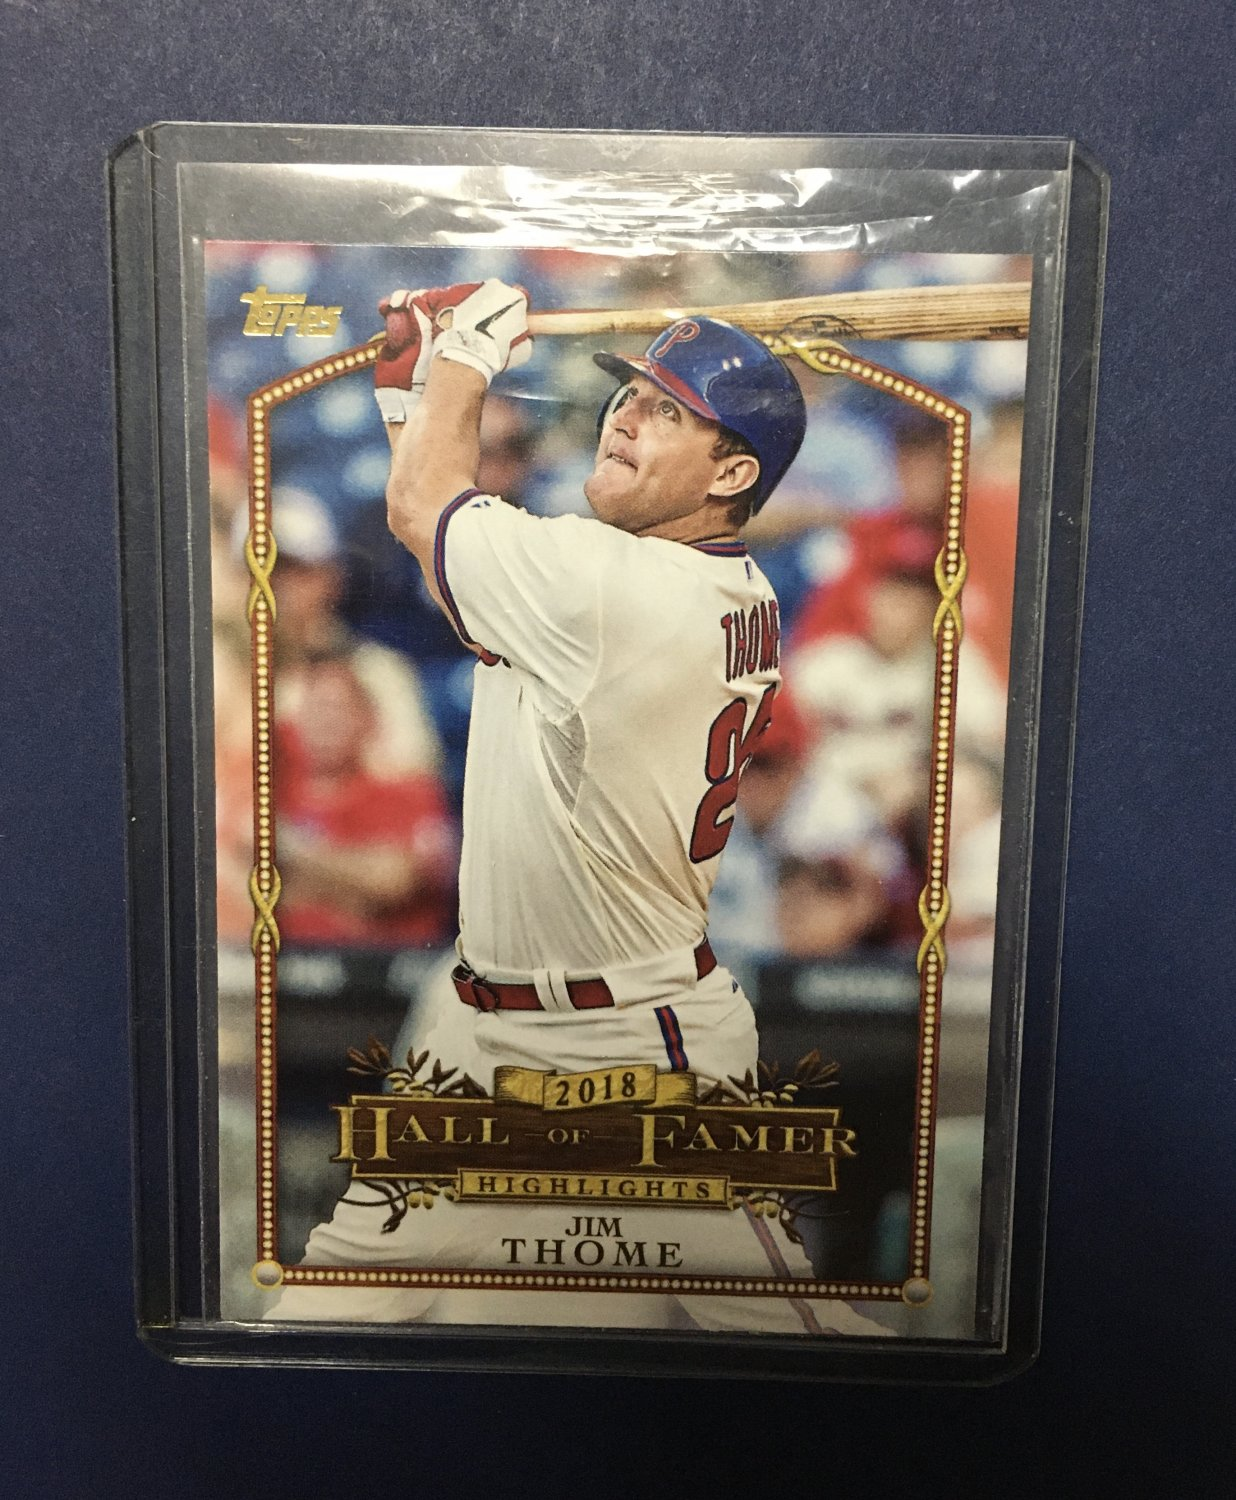 2018 Topps Update Hall of Famer Highlights Jim Thome #HFH-15